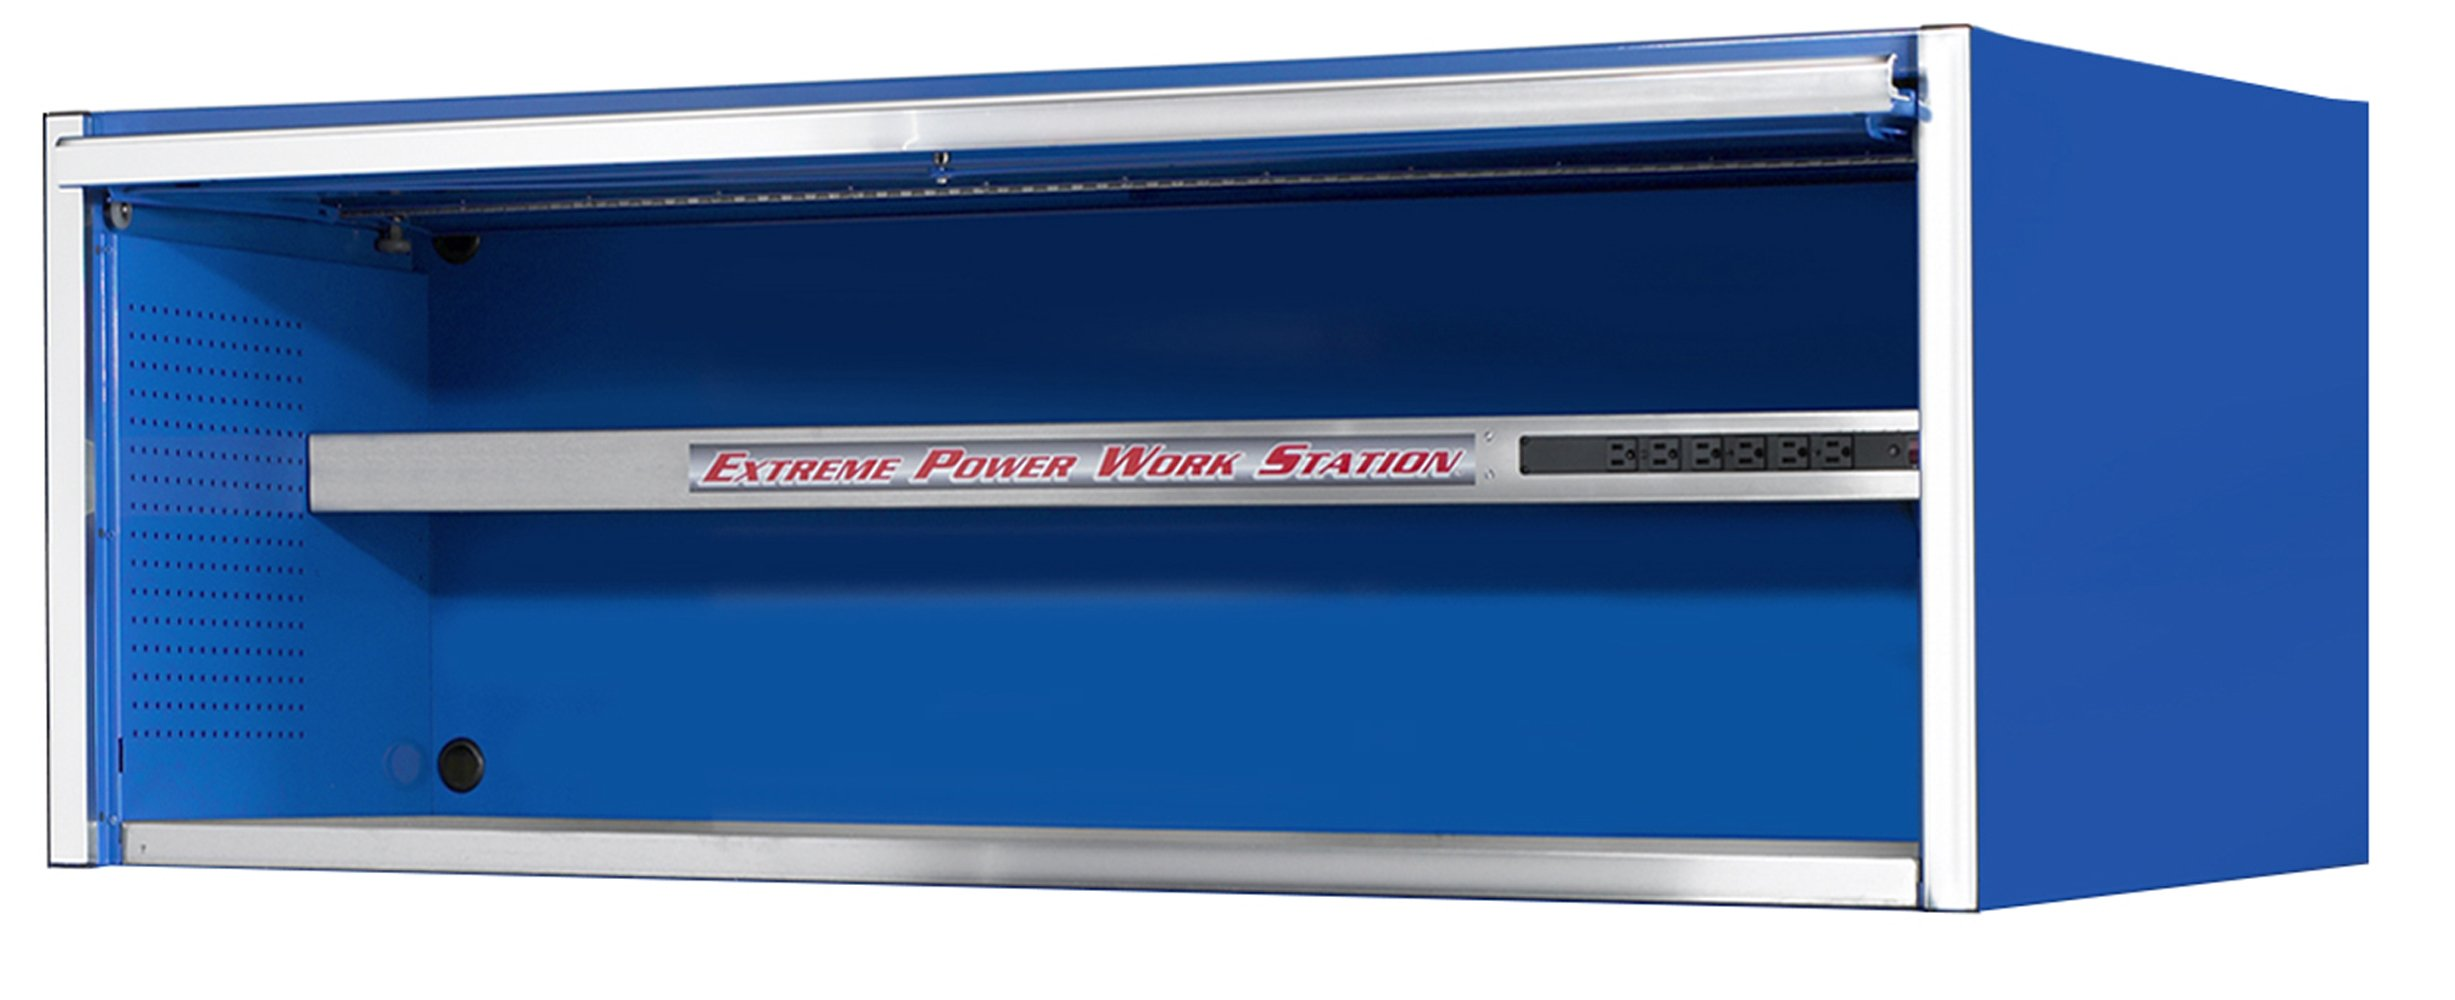 Extreme Tools EX7201HCBL Fully-Assembled Extreme Power Workstation Hutch with Roller Bearing Slides, 72-Inch, Blue High Gloss Powder Coat